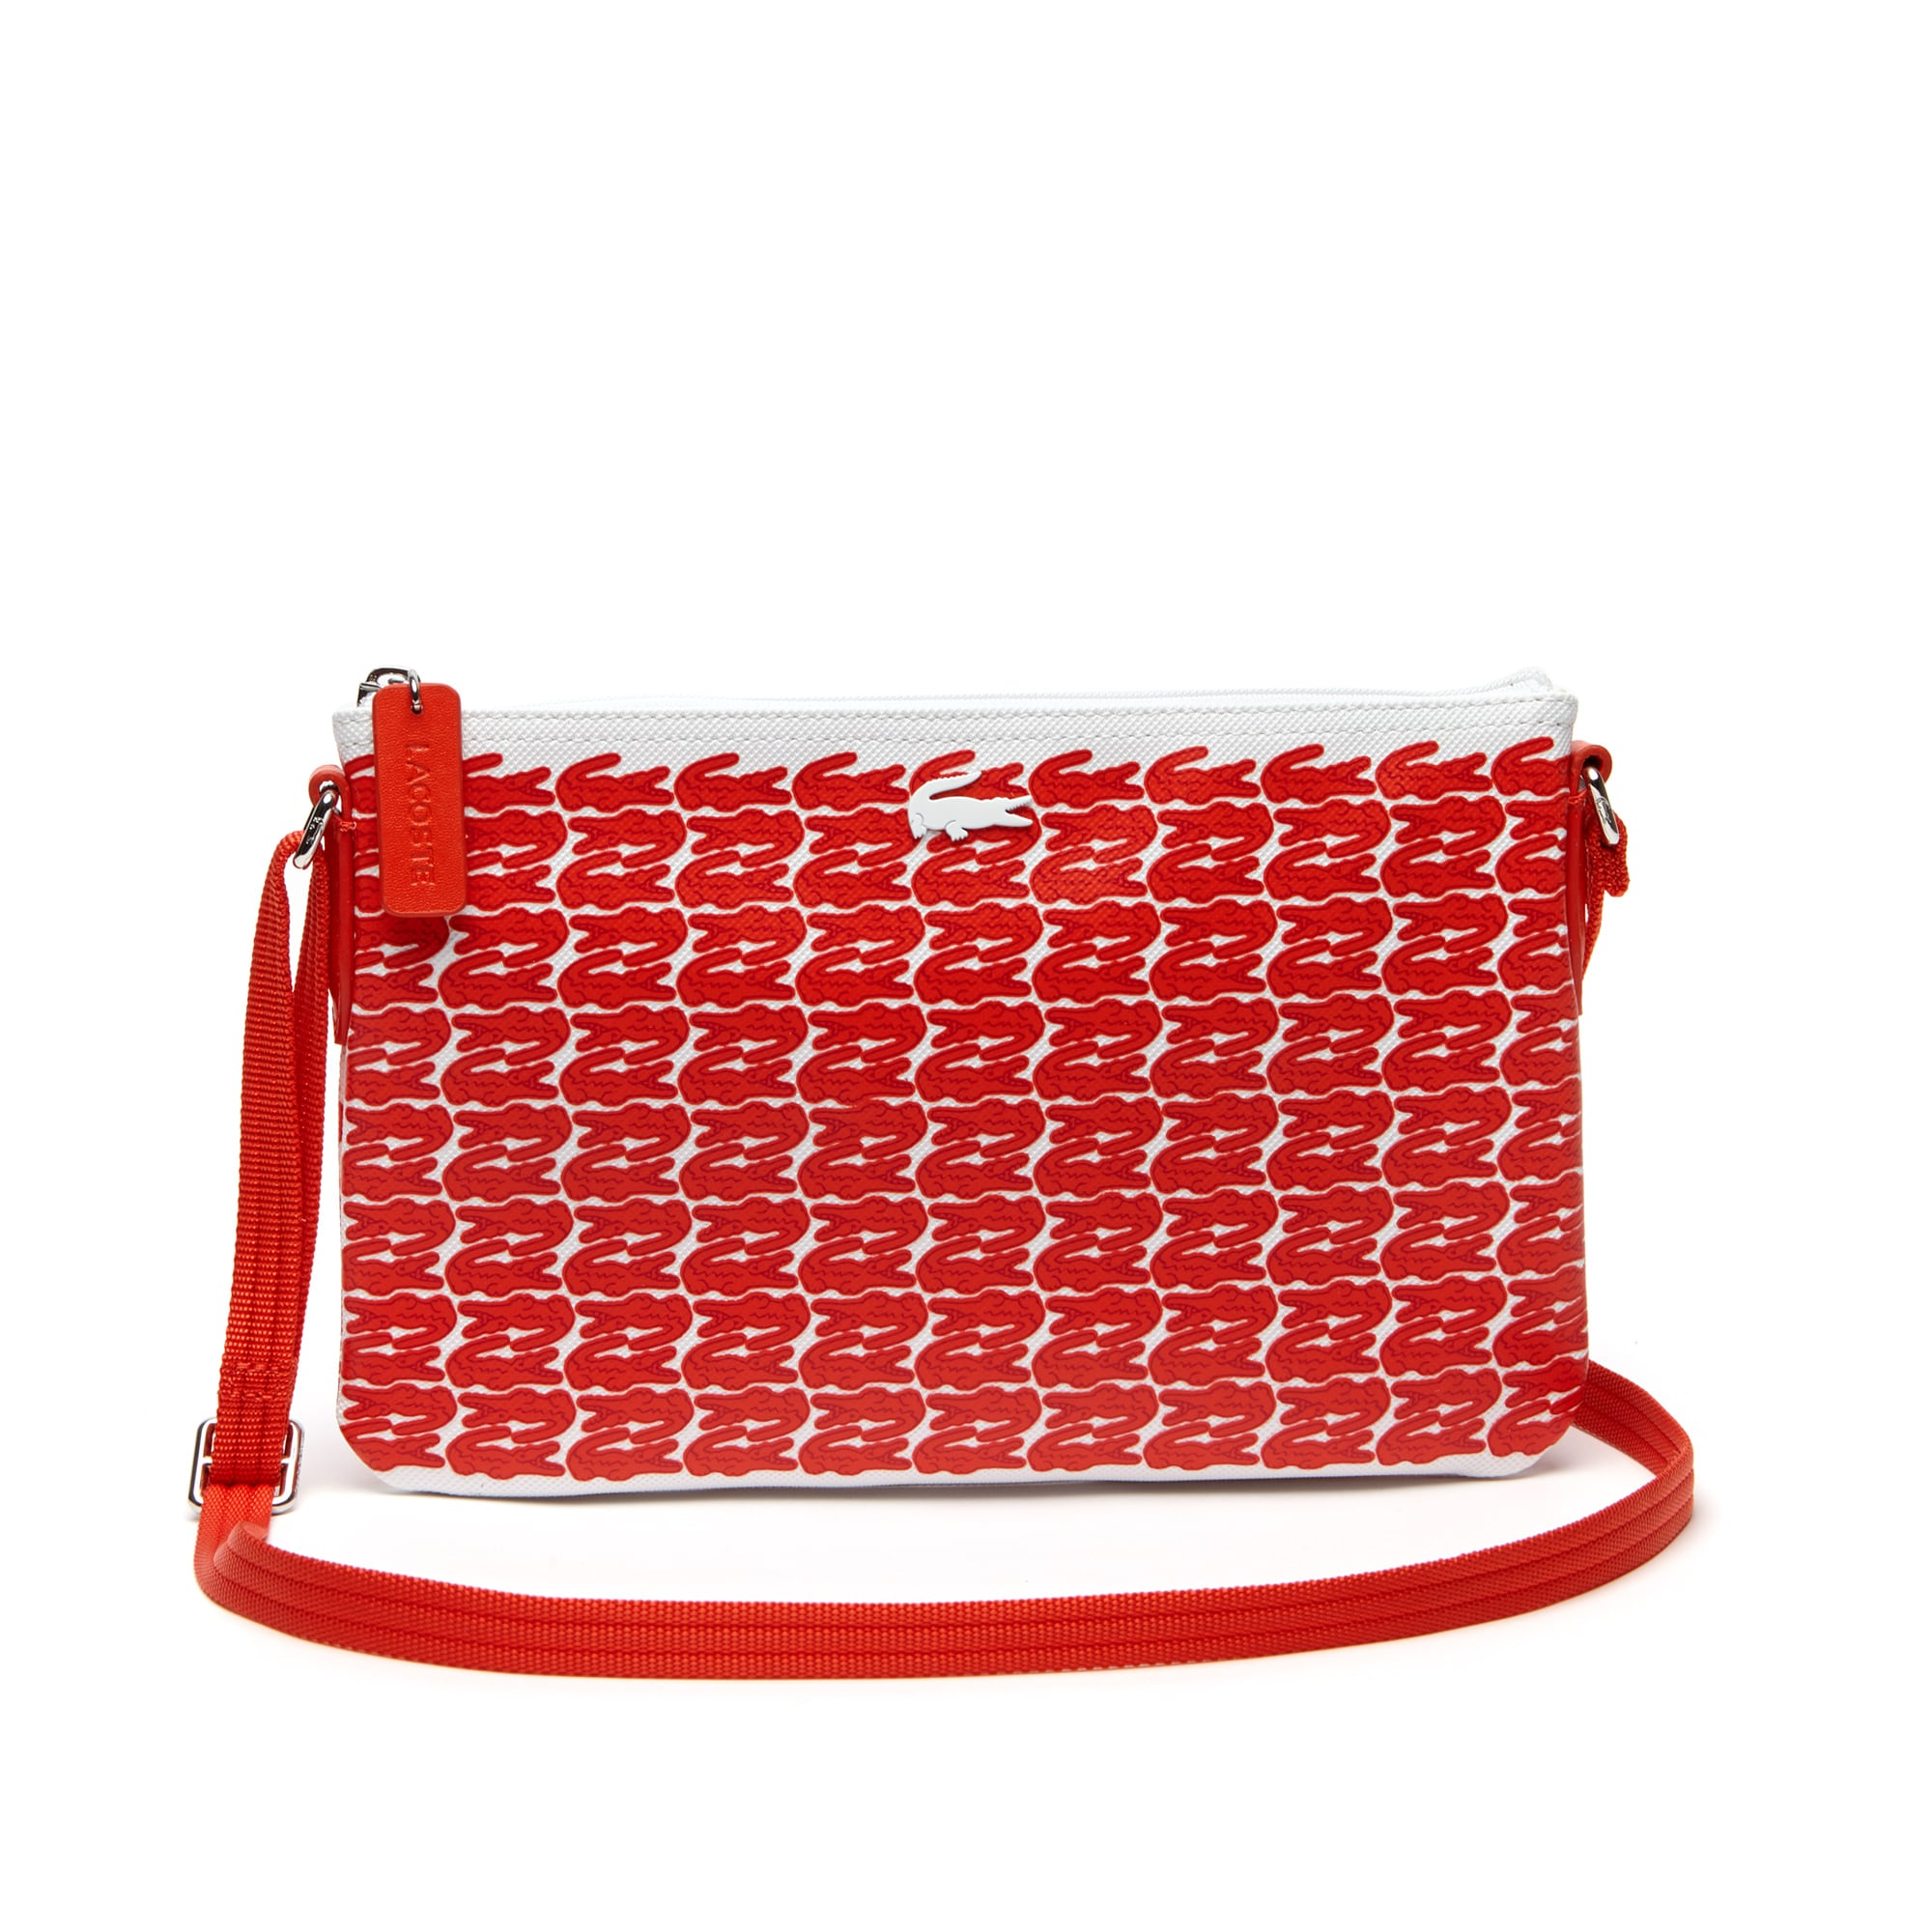 Women's L.12.12 CONCEPT Croc Zip Crossover Bag